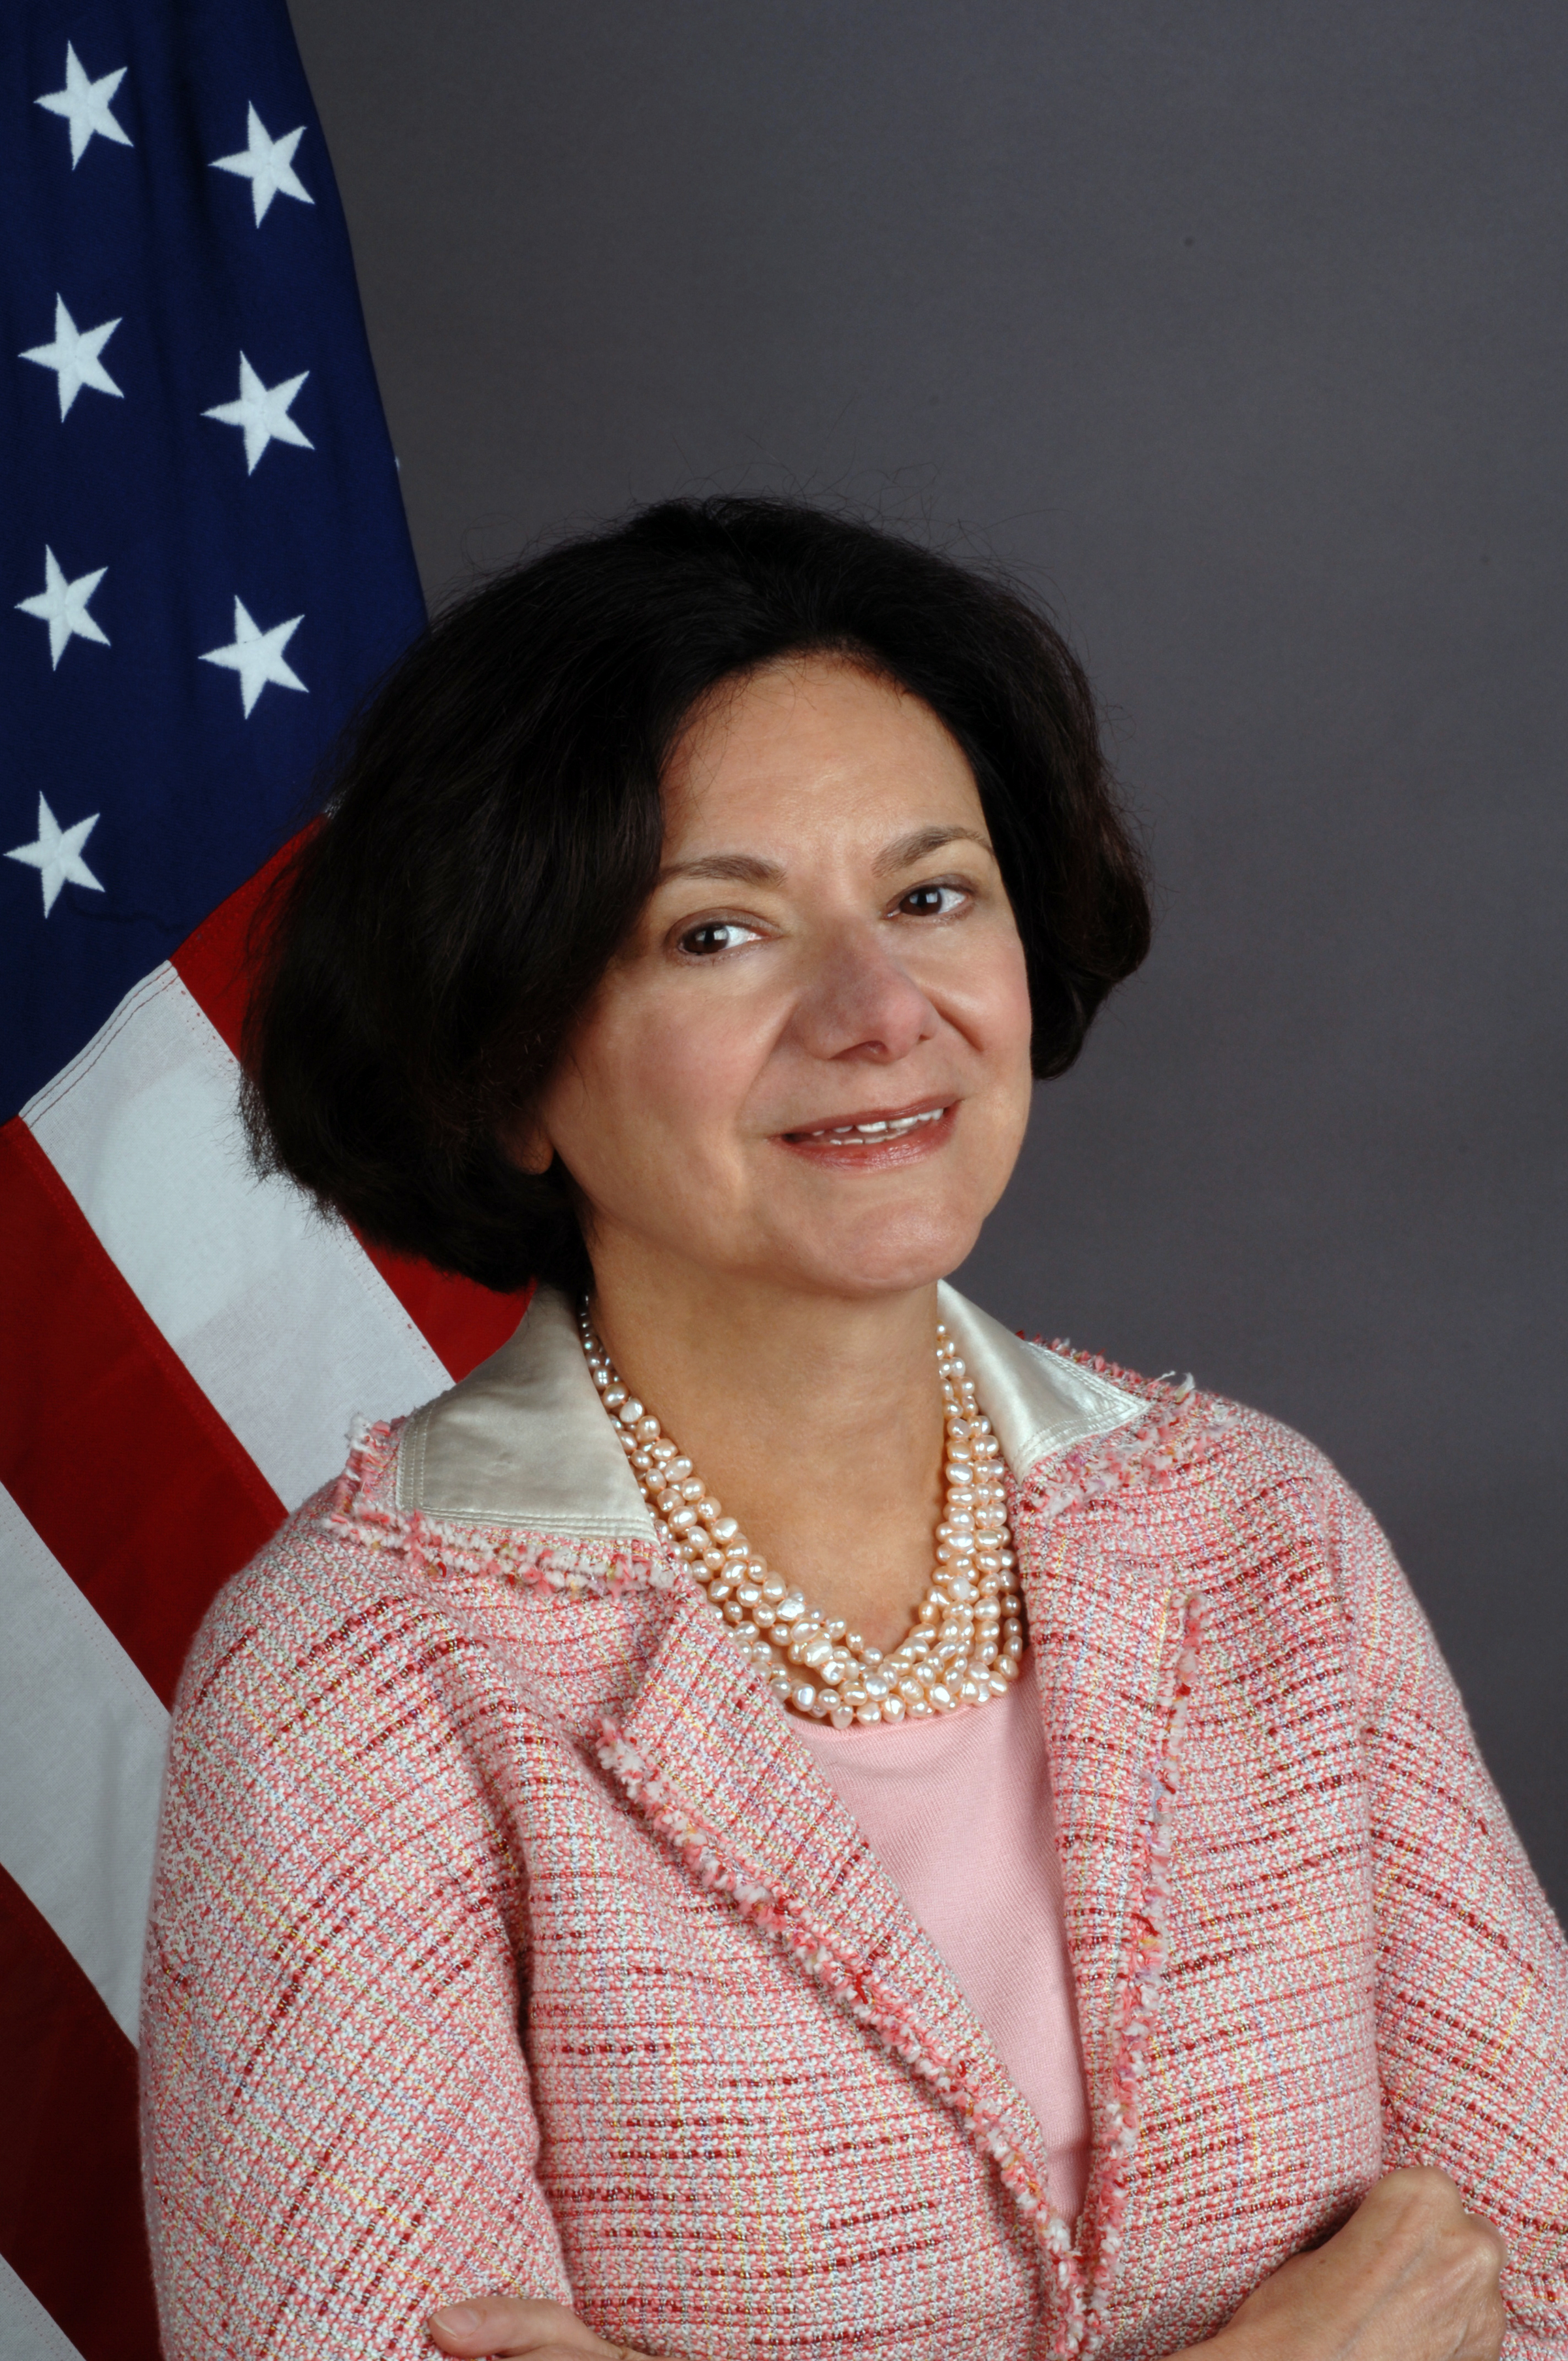 Rosemary DiCarlo official portrait.jpg